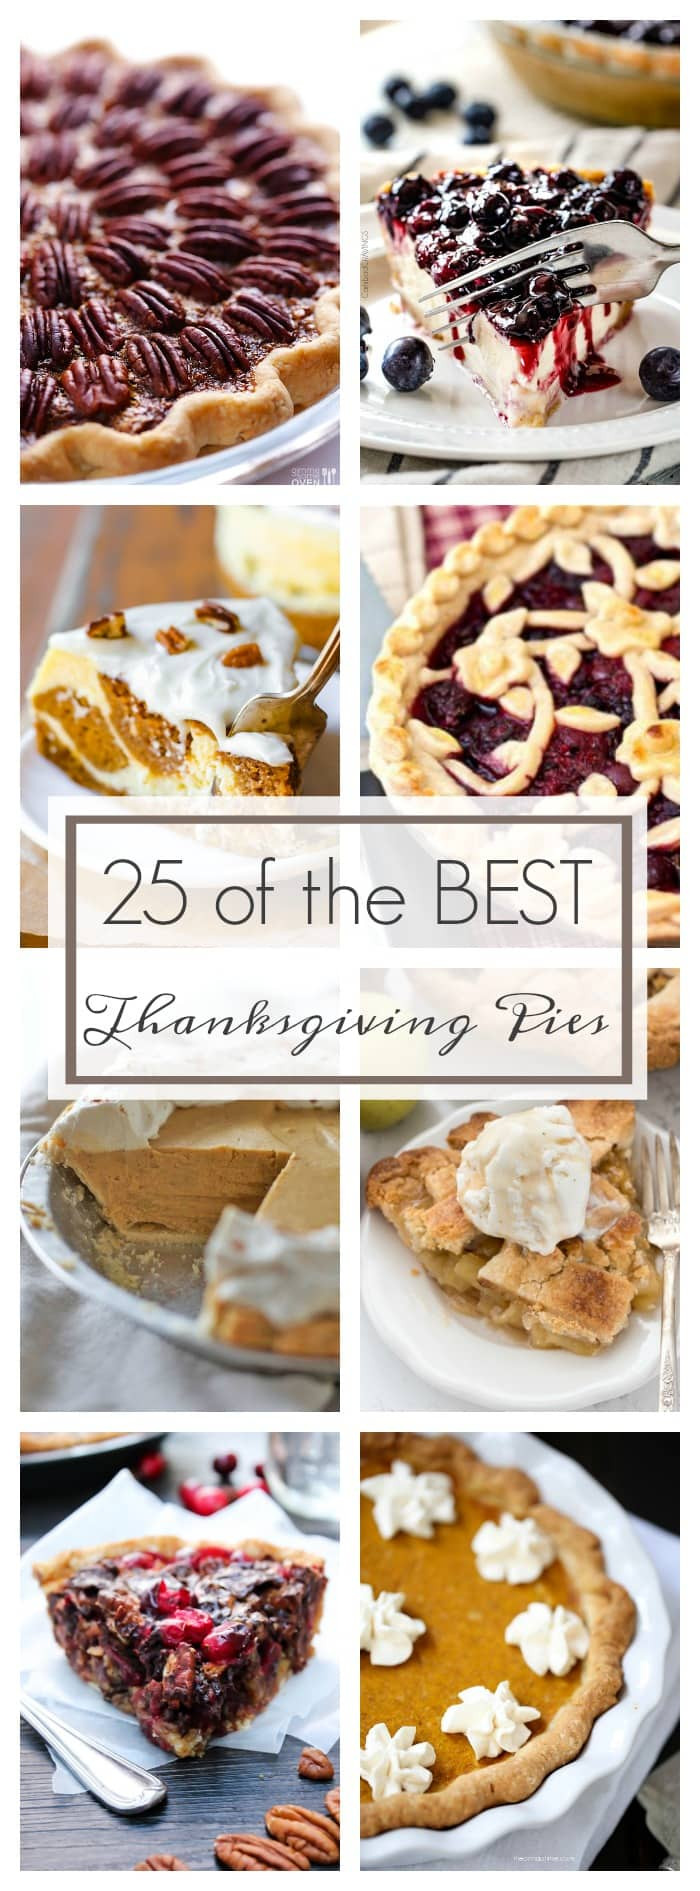 Best Thanksgiving Pies  25 of the Best Thanksgiving Pies A Dash of Sanity